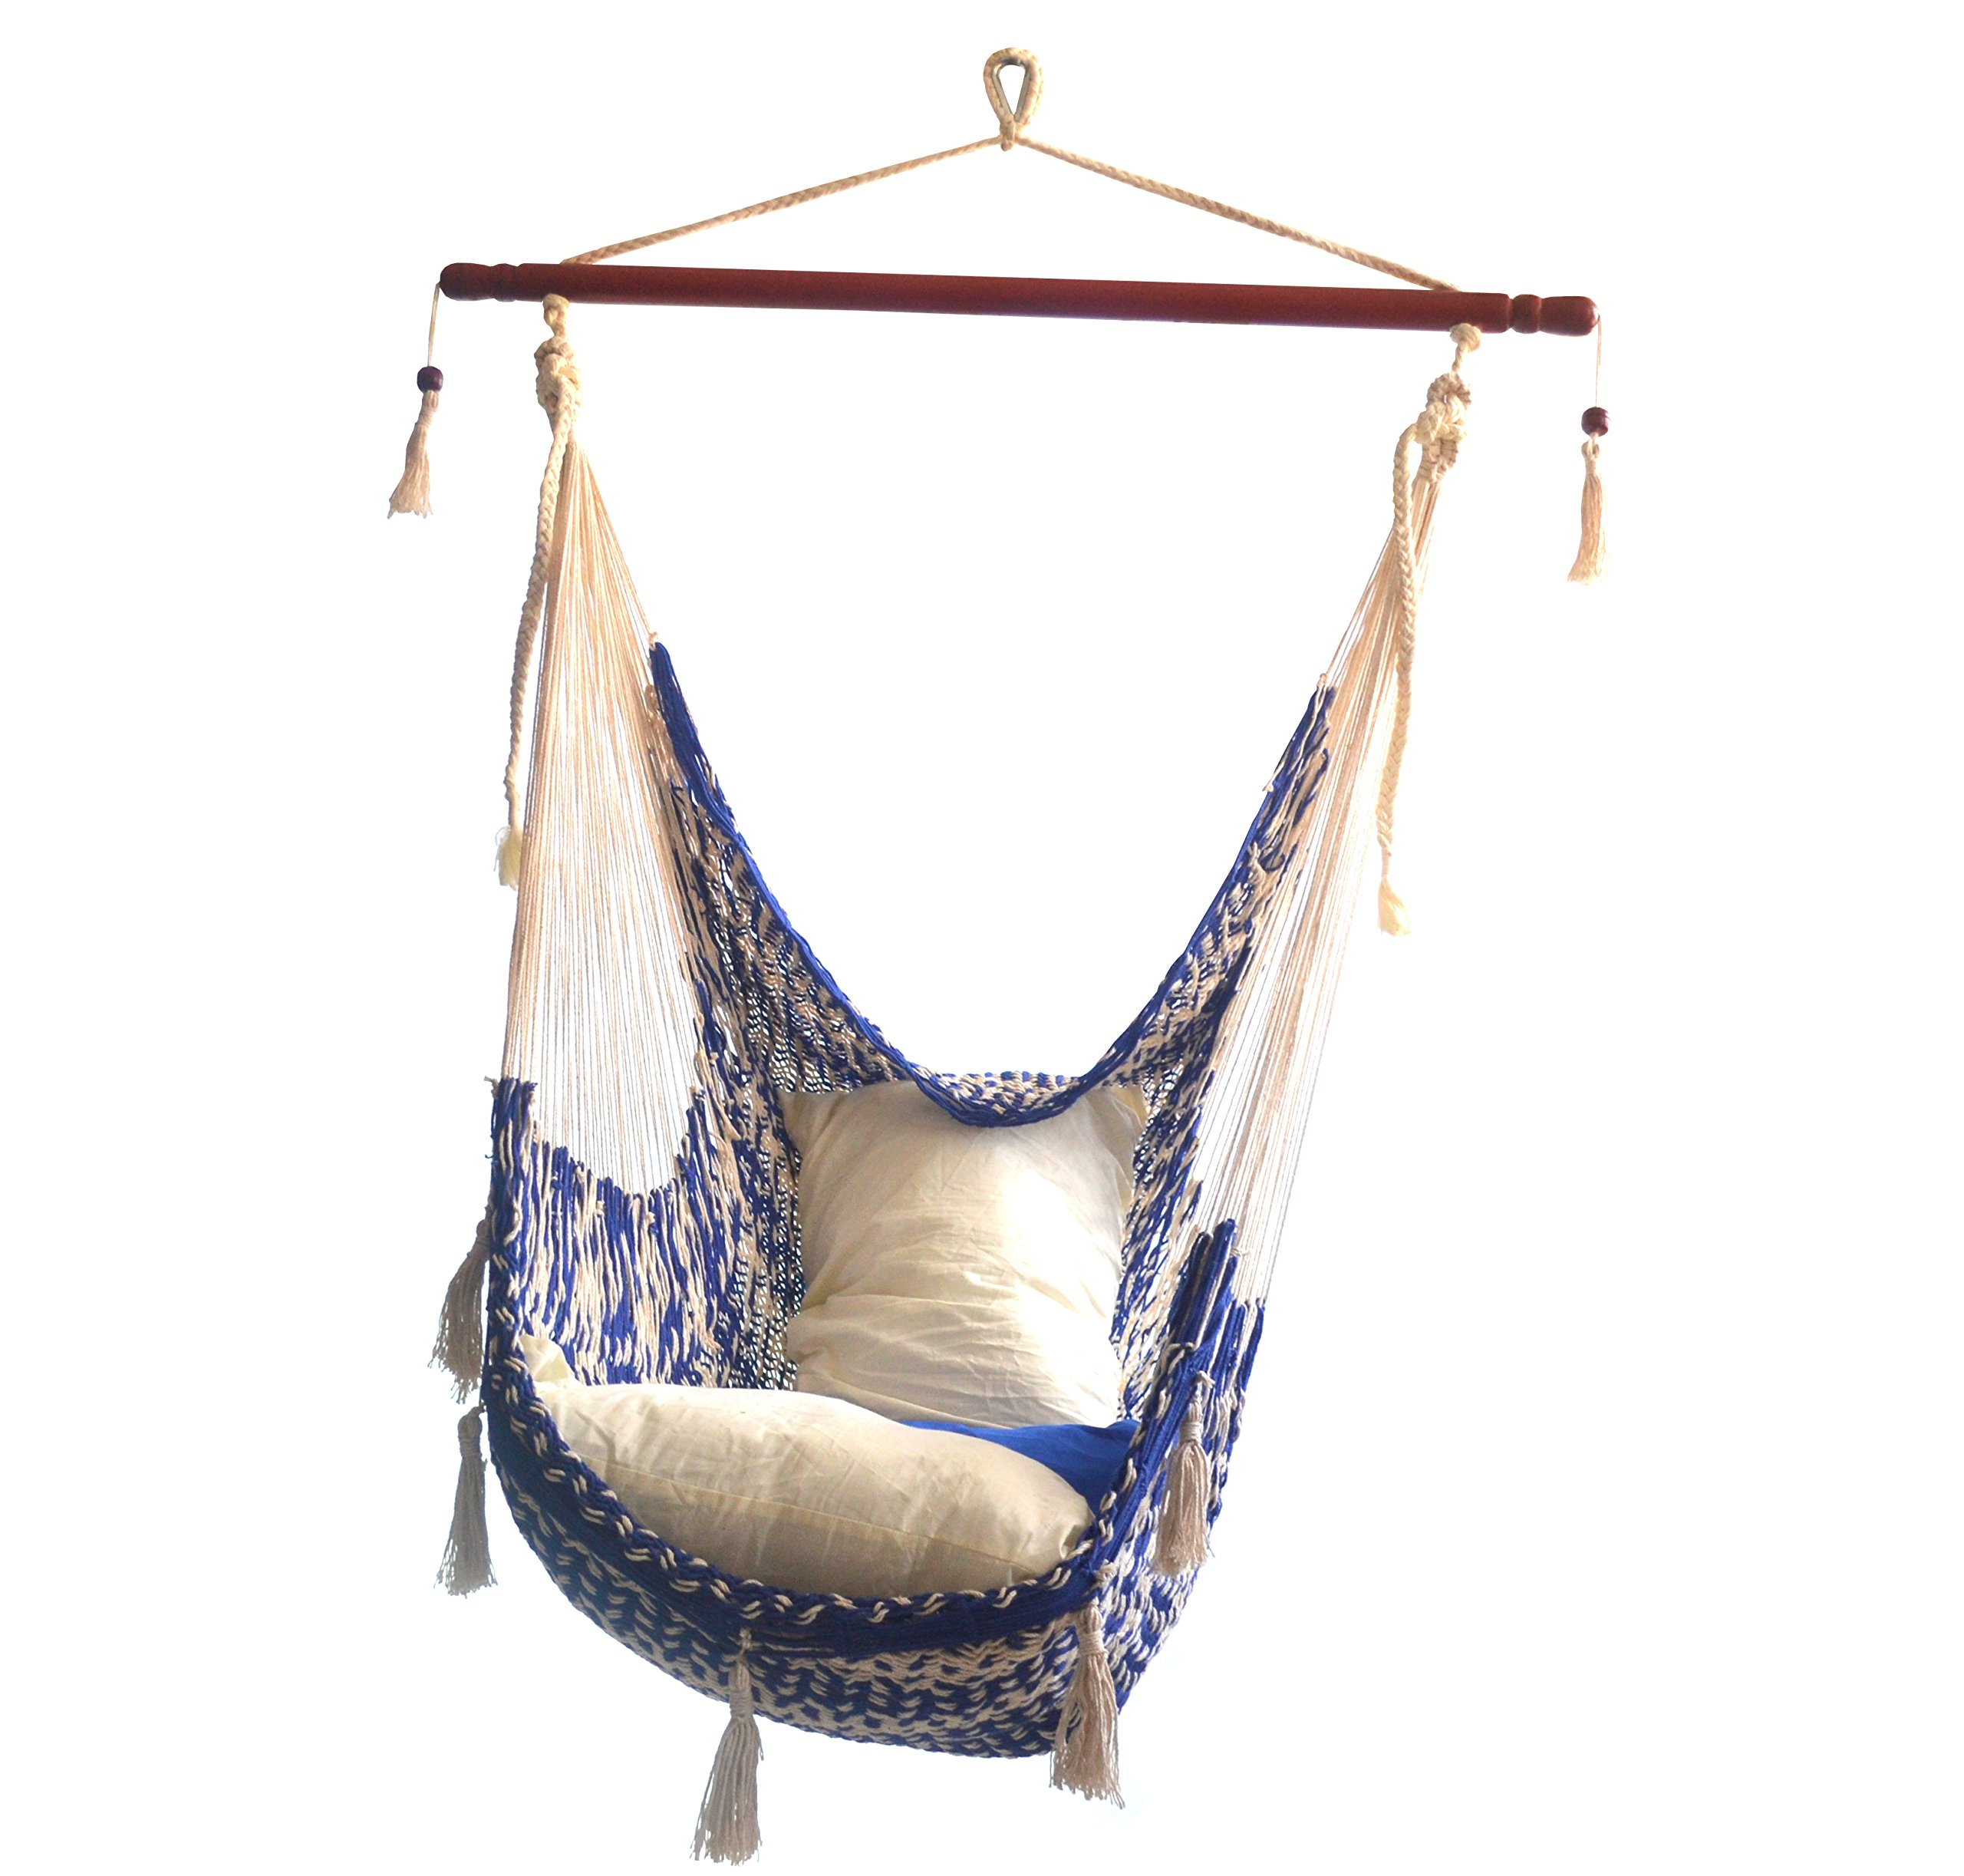 Hammocks Rada - CHAIR HAMMOCK DELUXE (Dark Blue/Natural) - THE BEST CHAIR HAMMOCK MAYAN STYLE , this Chair Hammock is elegance, wider, comfy, soft, make with natural cotton fibers HIGH QUALITY, the Chair is make with tight weave using Thicker Strings in Cotton RESISTANT, the Cotton Thicker Strings make strong the Chair Hammock and the Nylon Rope is make with Nylon Strings offering strength in all its components - patio-furniture, patio, hammocks - 81SUPQYE6DL -